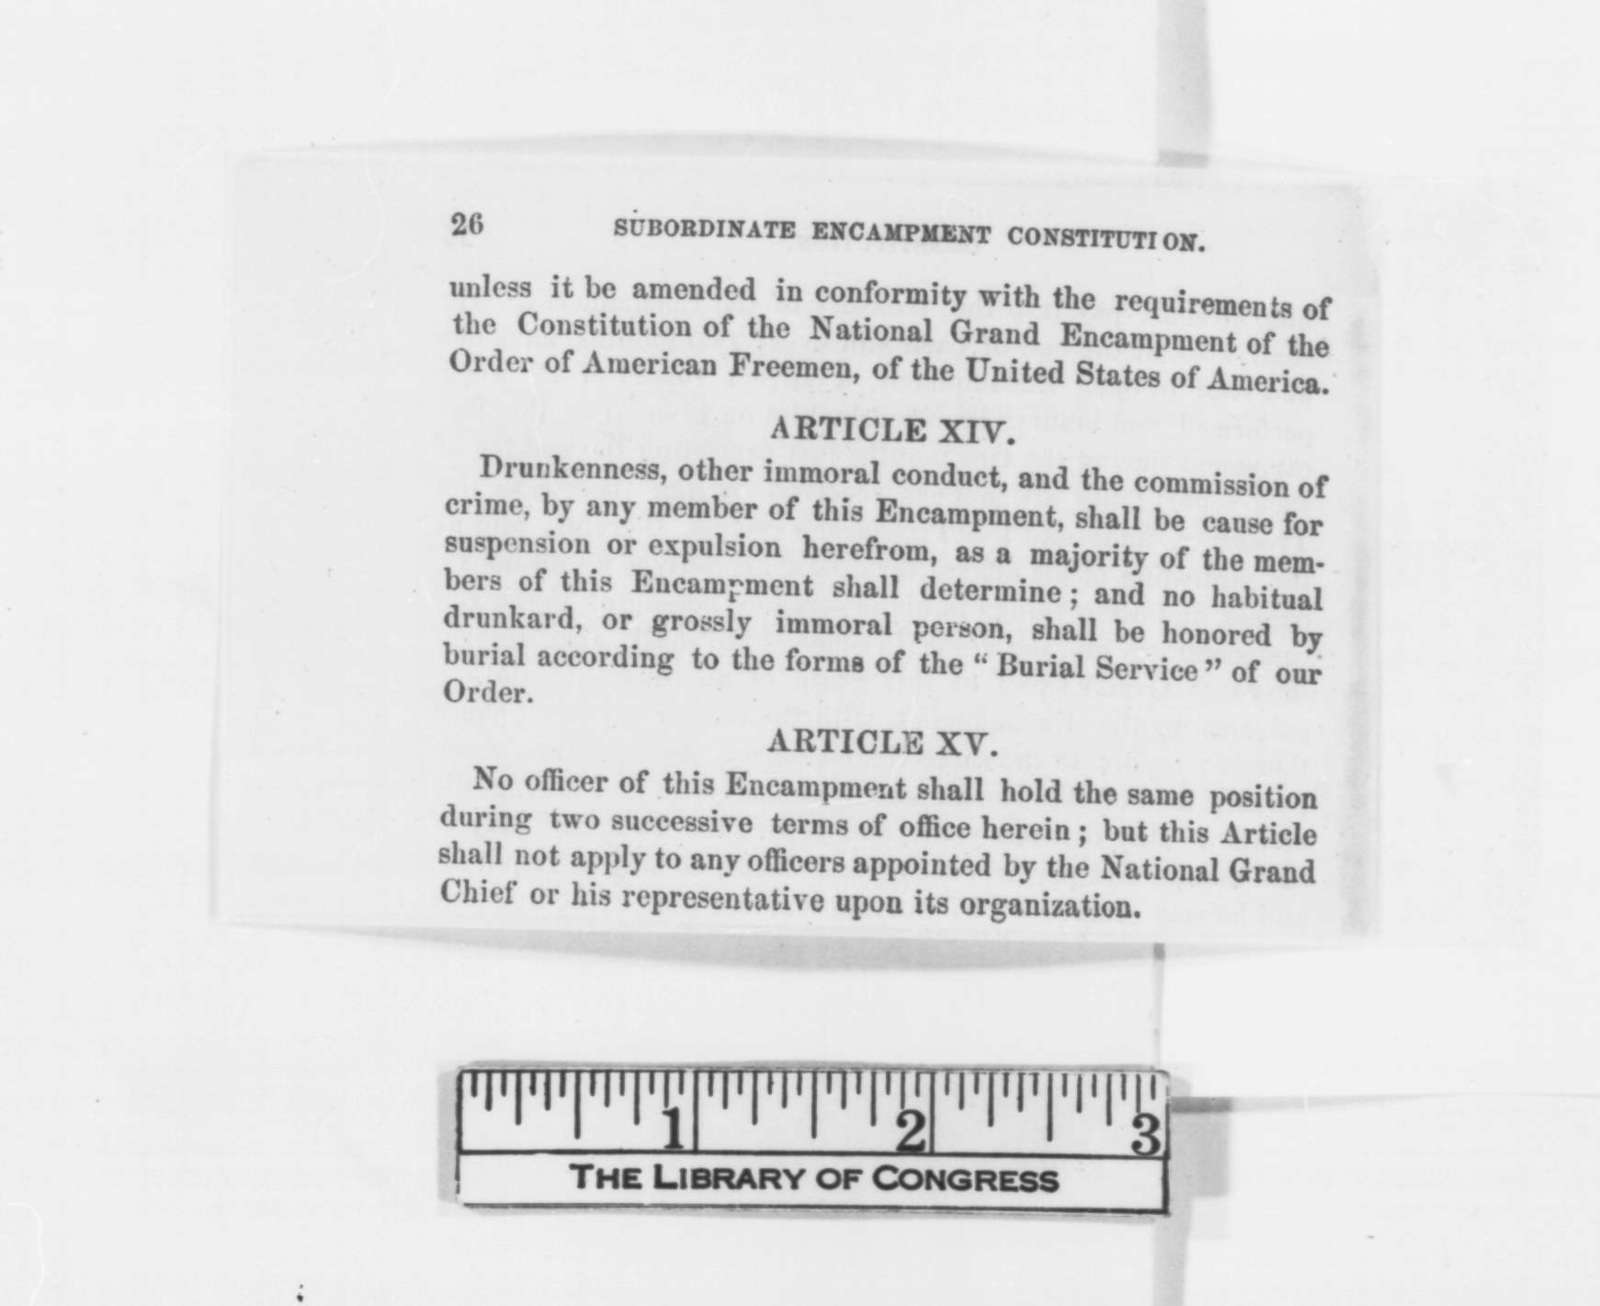 Order of American Freeman, Wednesday, January 01, 1862  (Pamphlet)